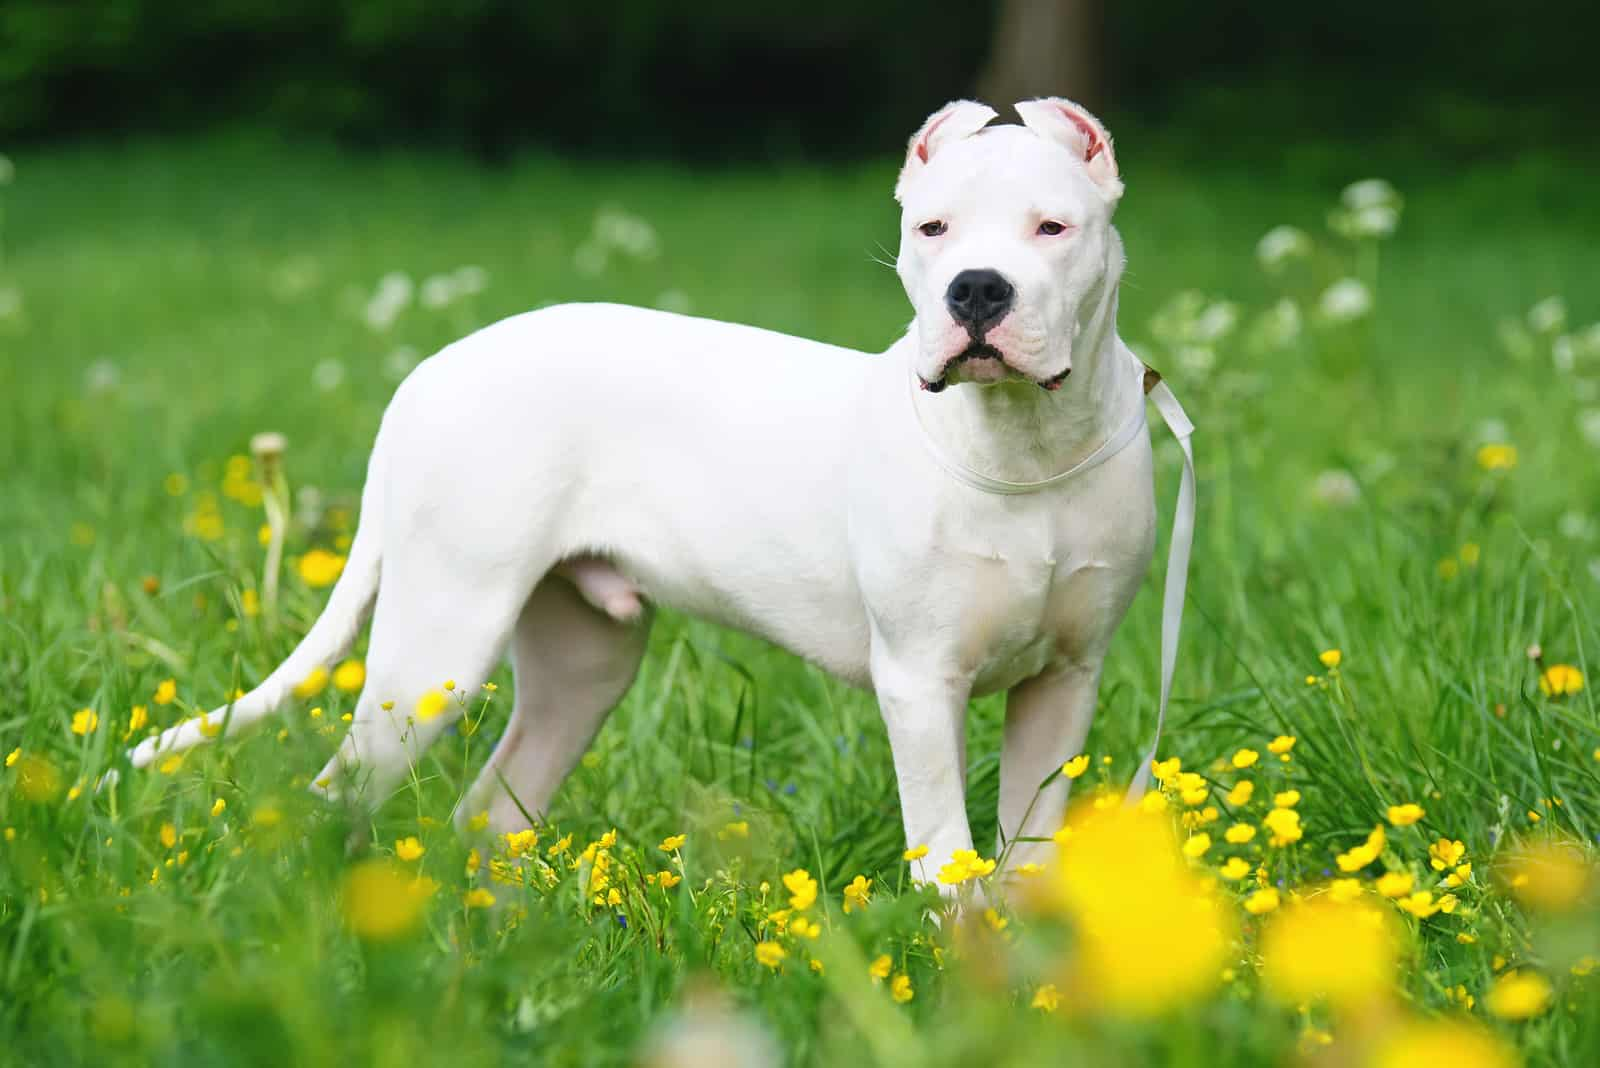 Dogo Argentino dog with cropped ears staying outdoors